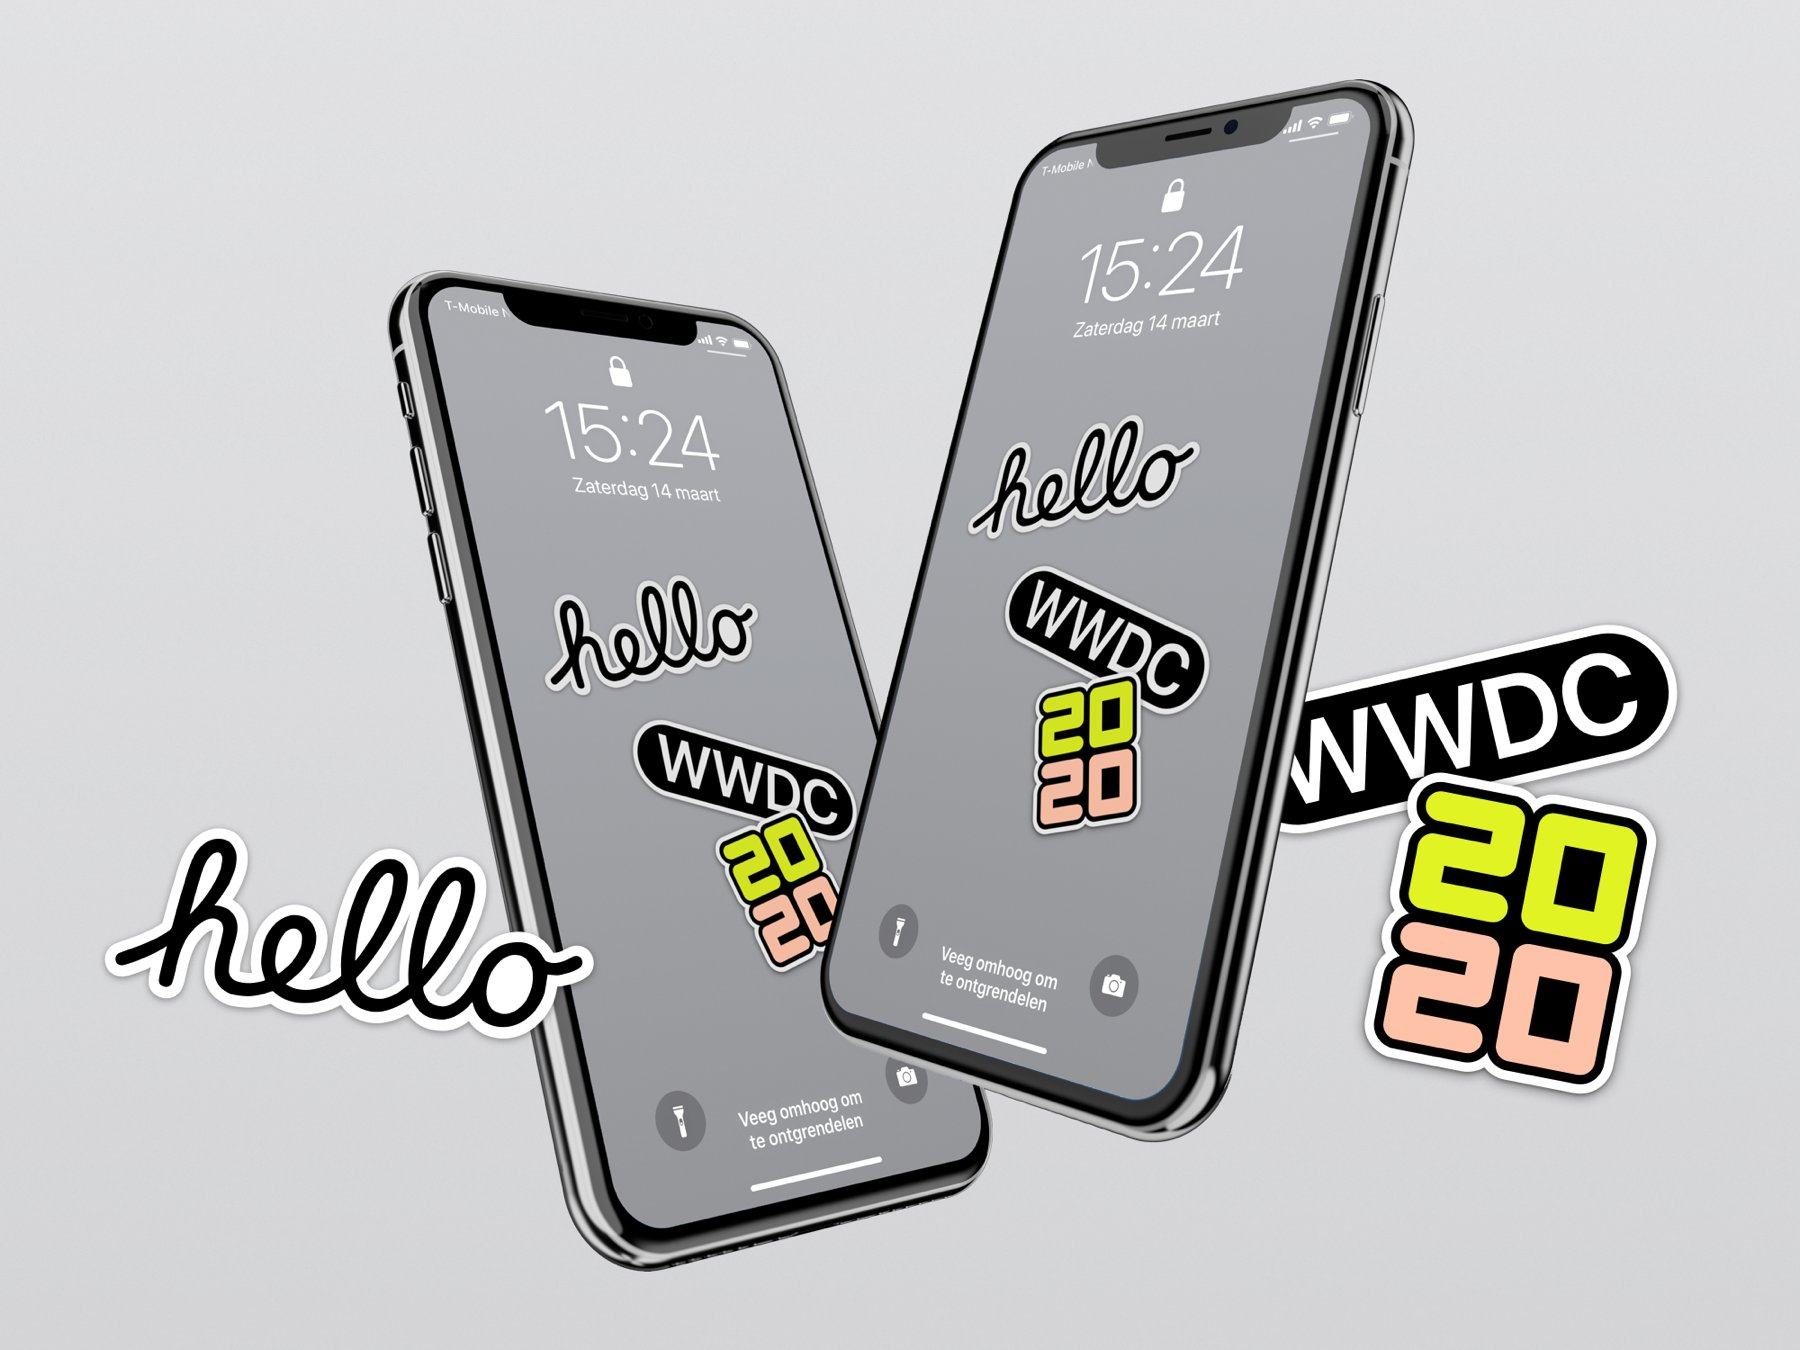 Wwdc 2020 Wallpapers For Iphone And Ipad